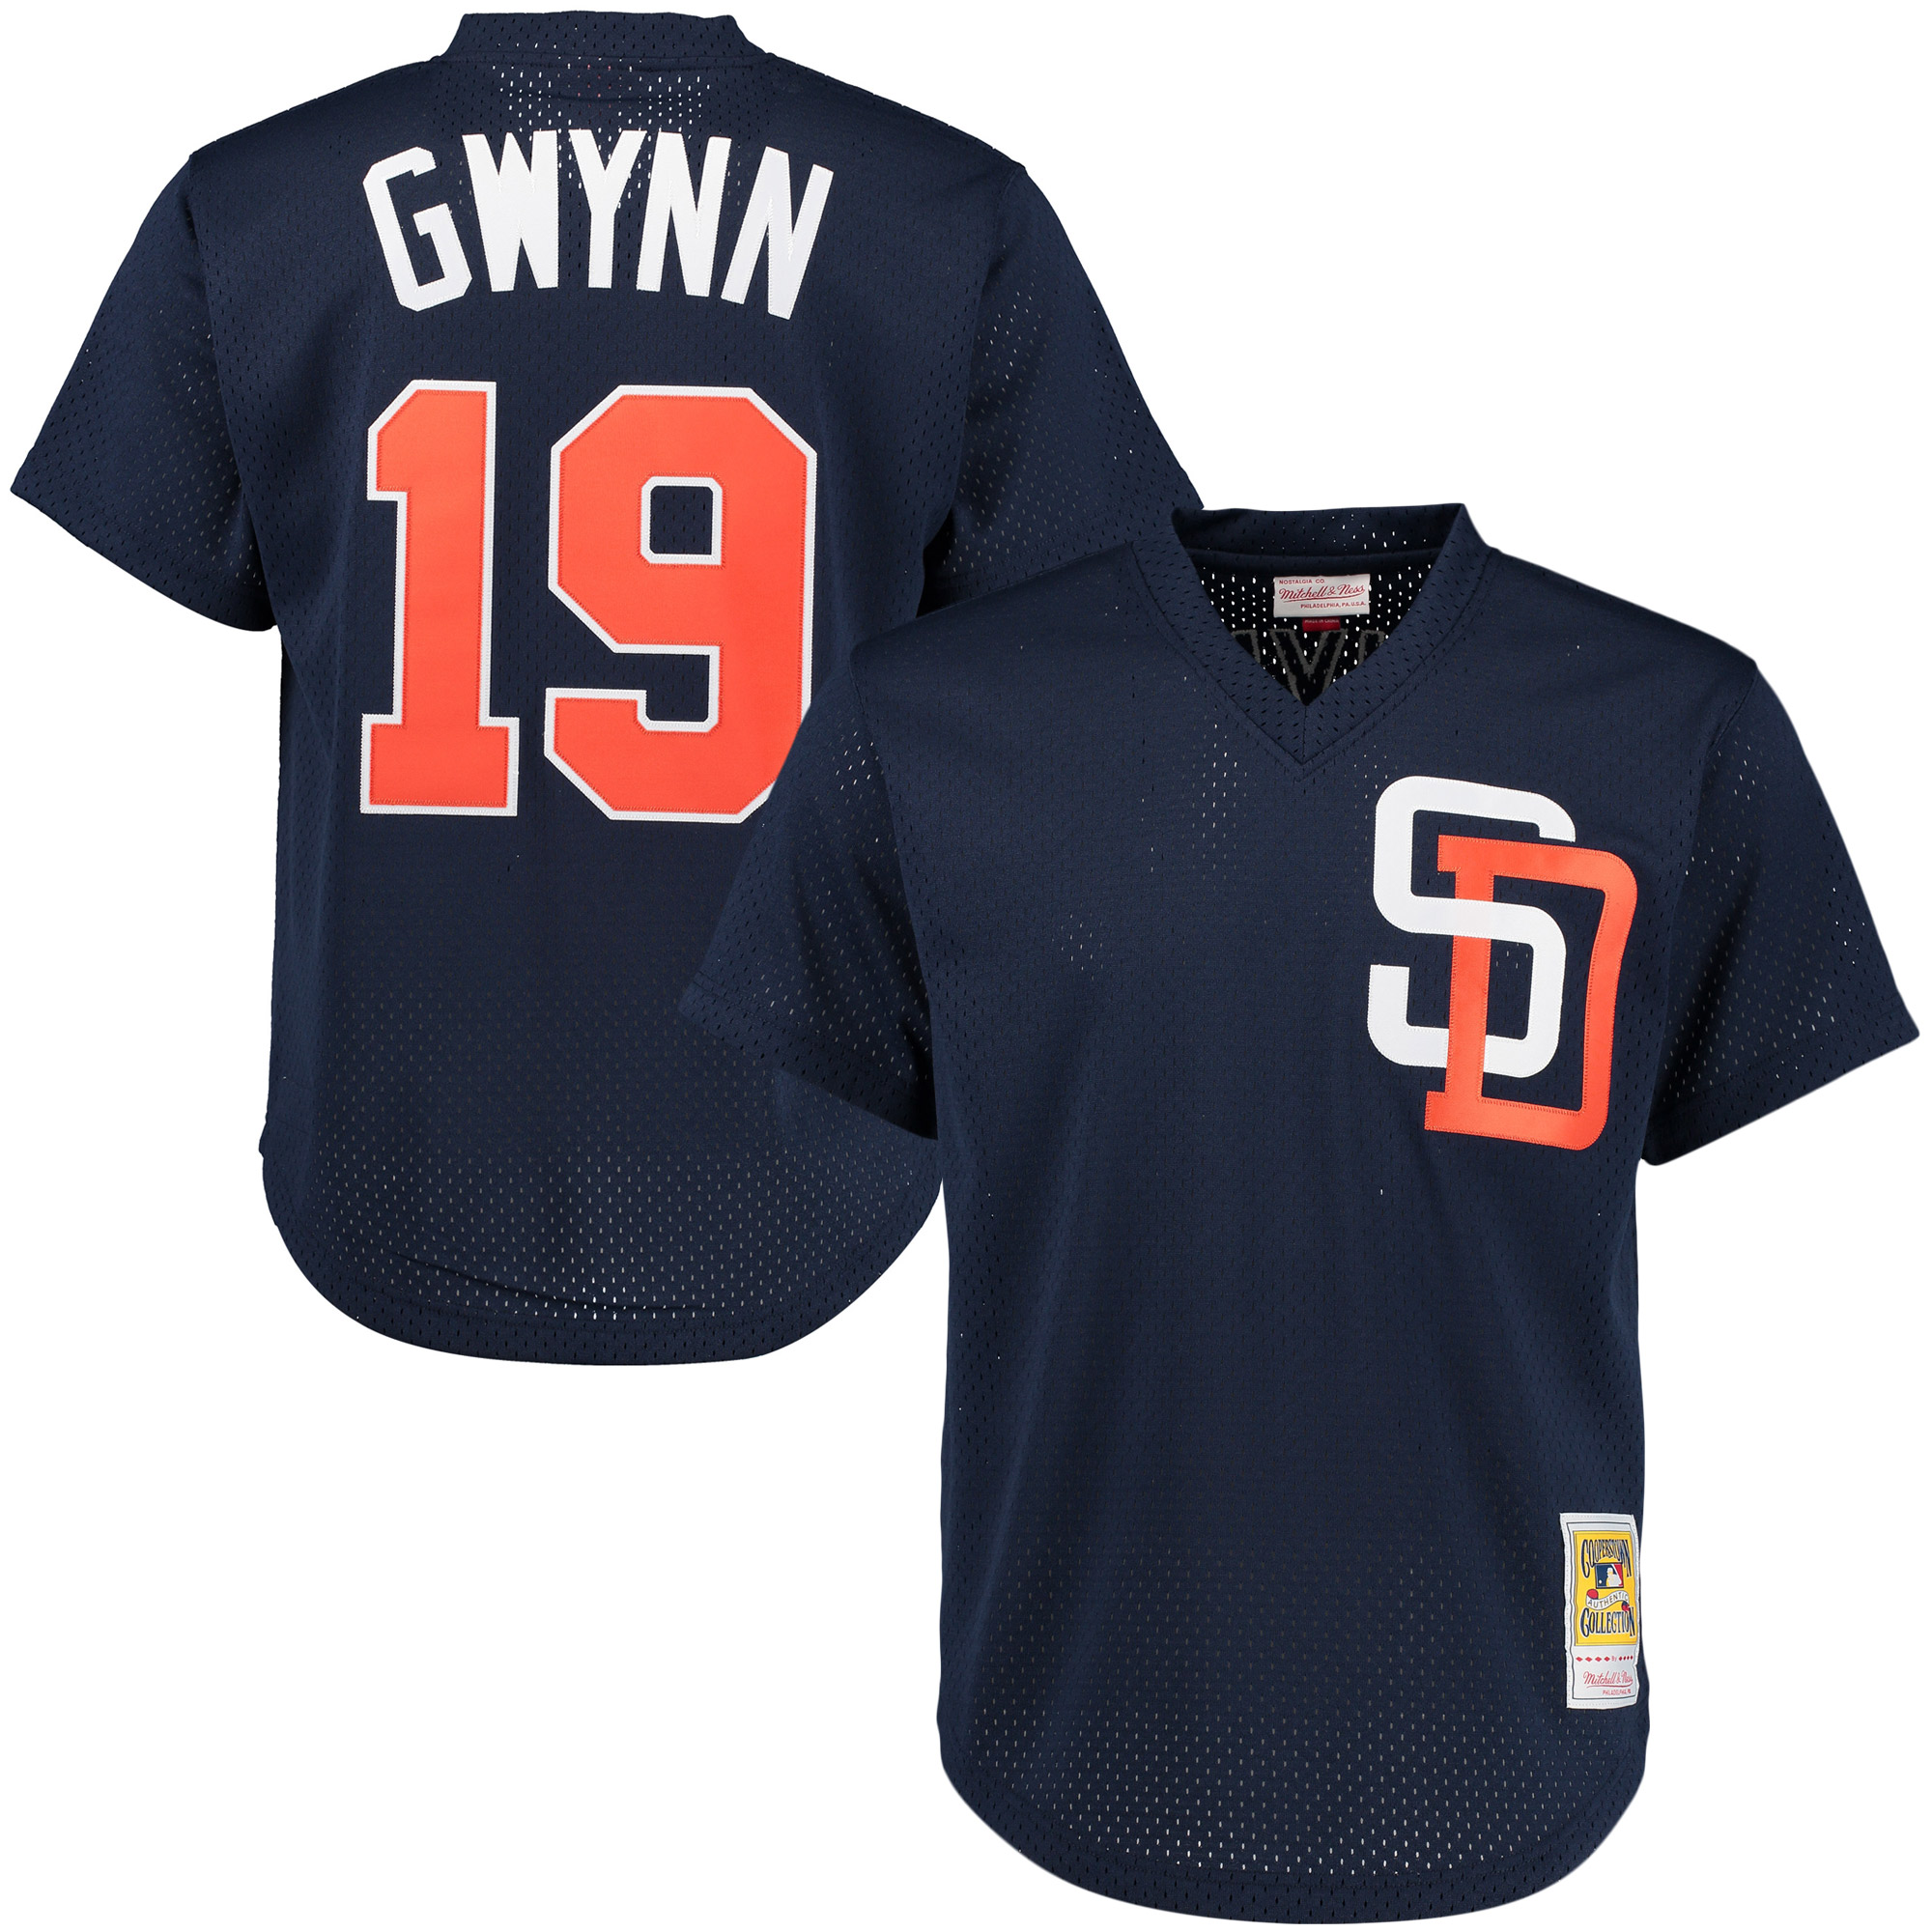 Tony Gwynn San Diego Padres Mitchell & Ness Cooperstown Mesh Batting Practice Jersey - Navy